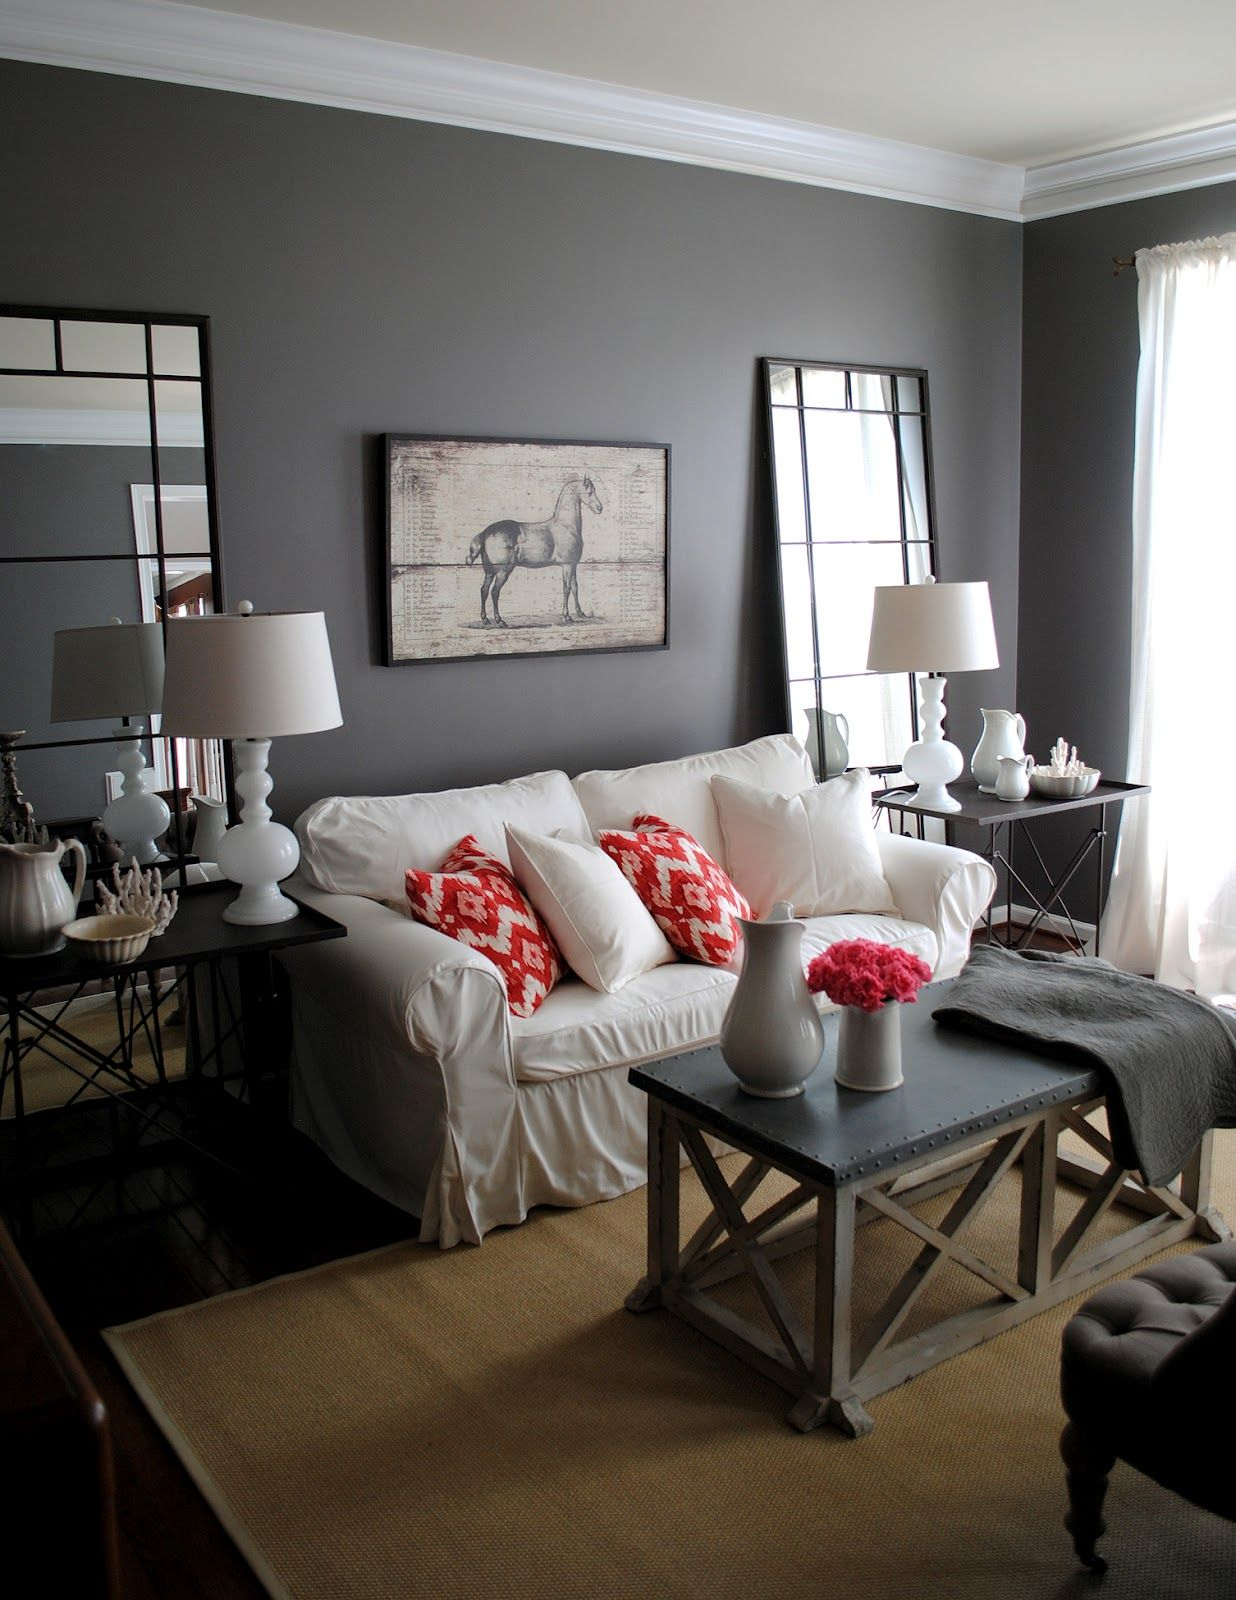 Uberlegen I Just Painted My Walls Charcoal. Thinking Of These Colors For My Entry Room